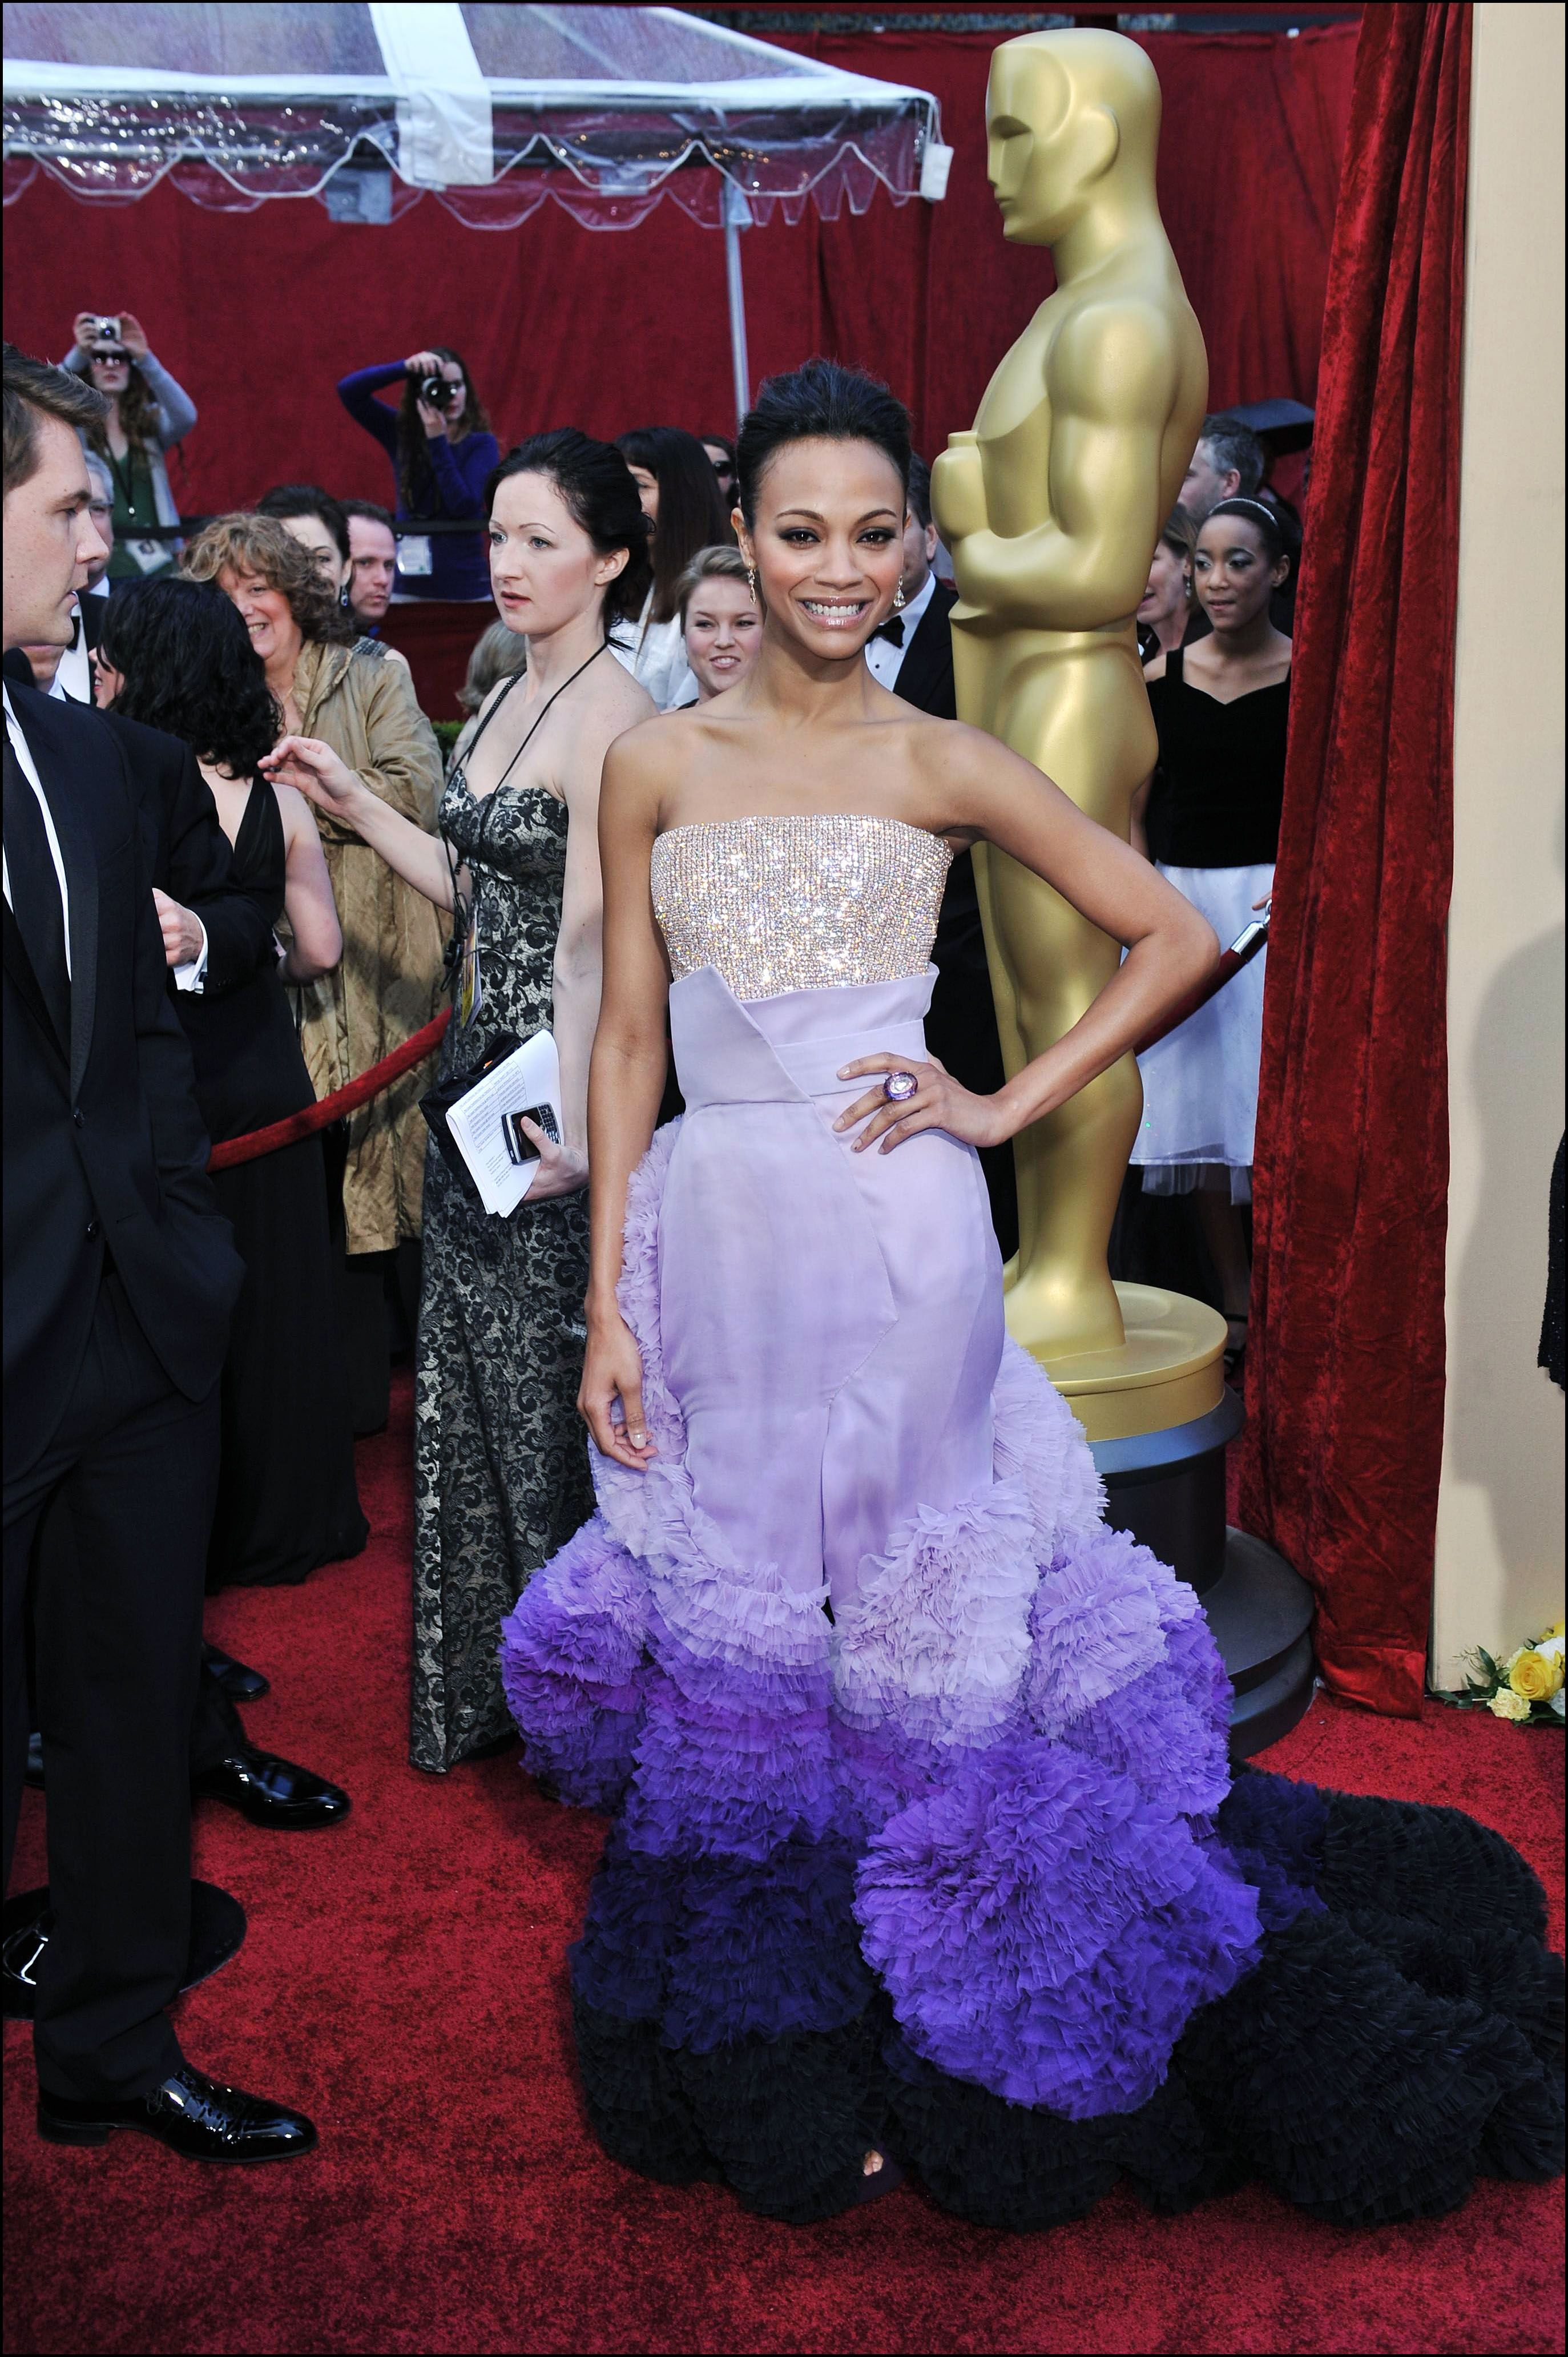 Zoe Saldana at the 82nd Academy Awards for the Oscars Ceremony on March 7, 2010 in L.A. | Photo: Getty Images